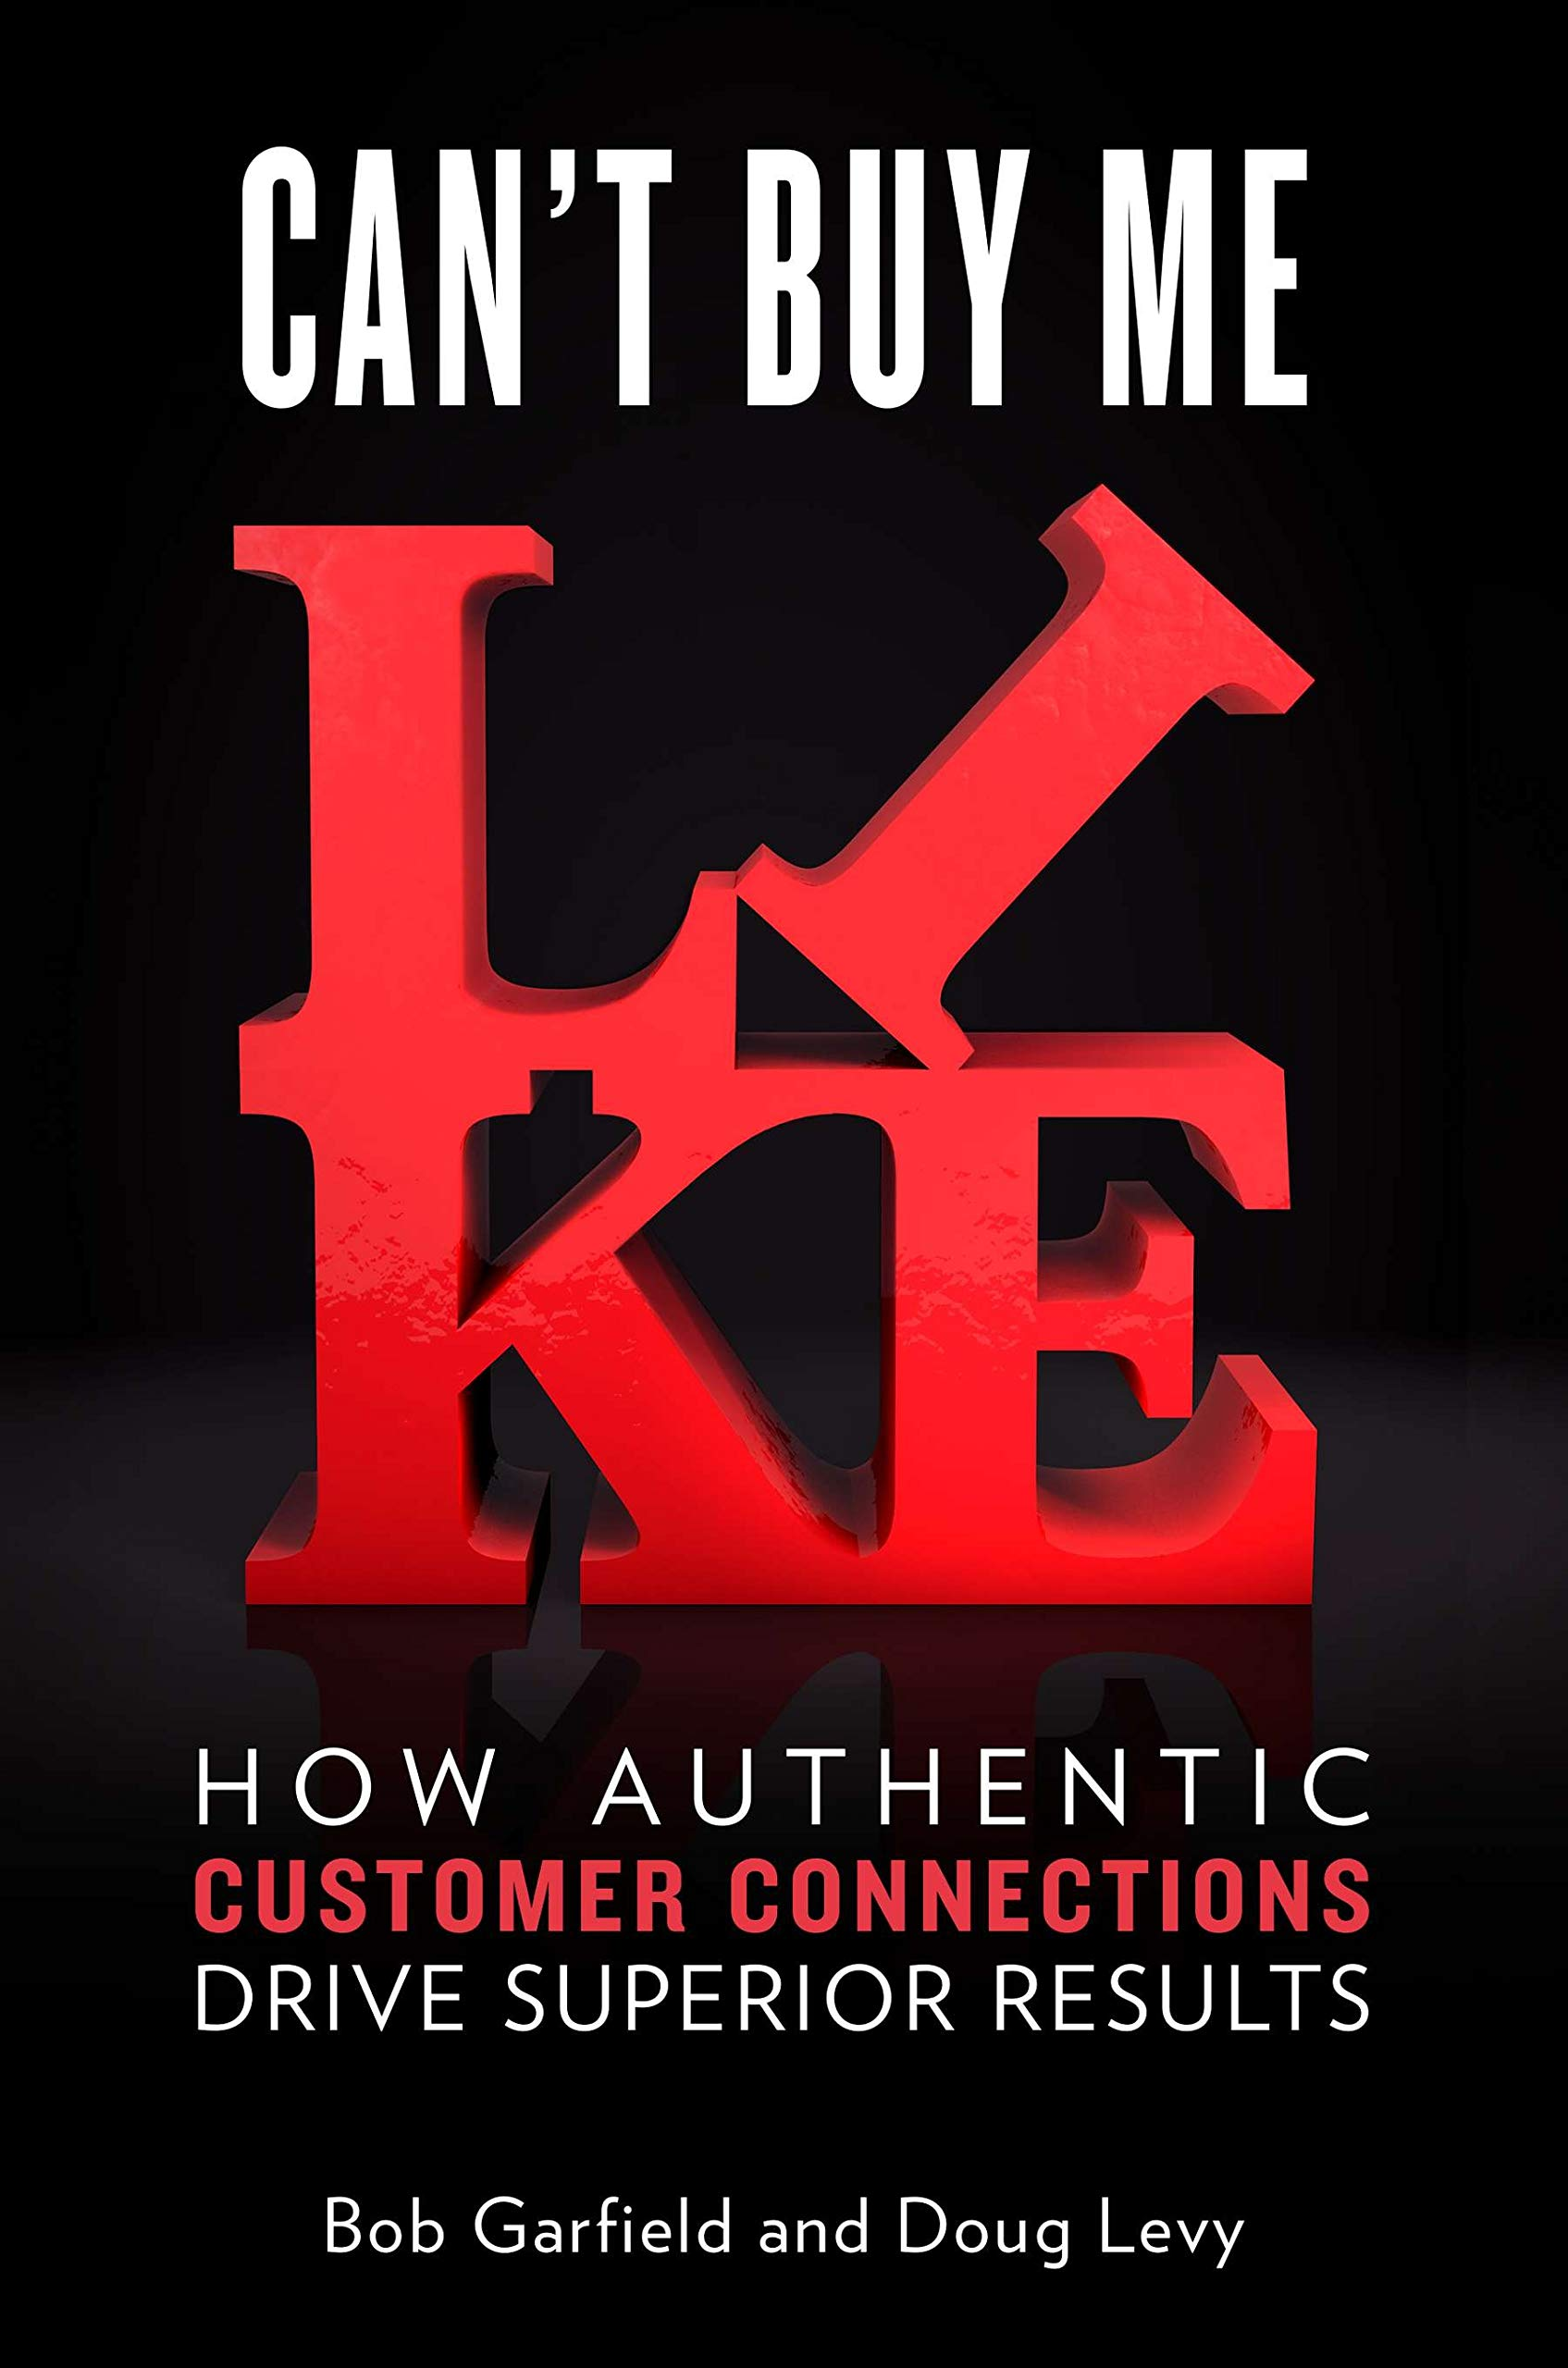 Download Can't Buy Me Like: How Authentic Customer Connections Drive Superior Results 